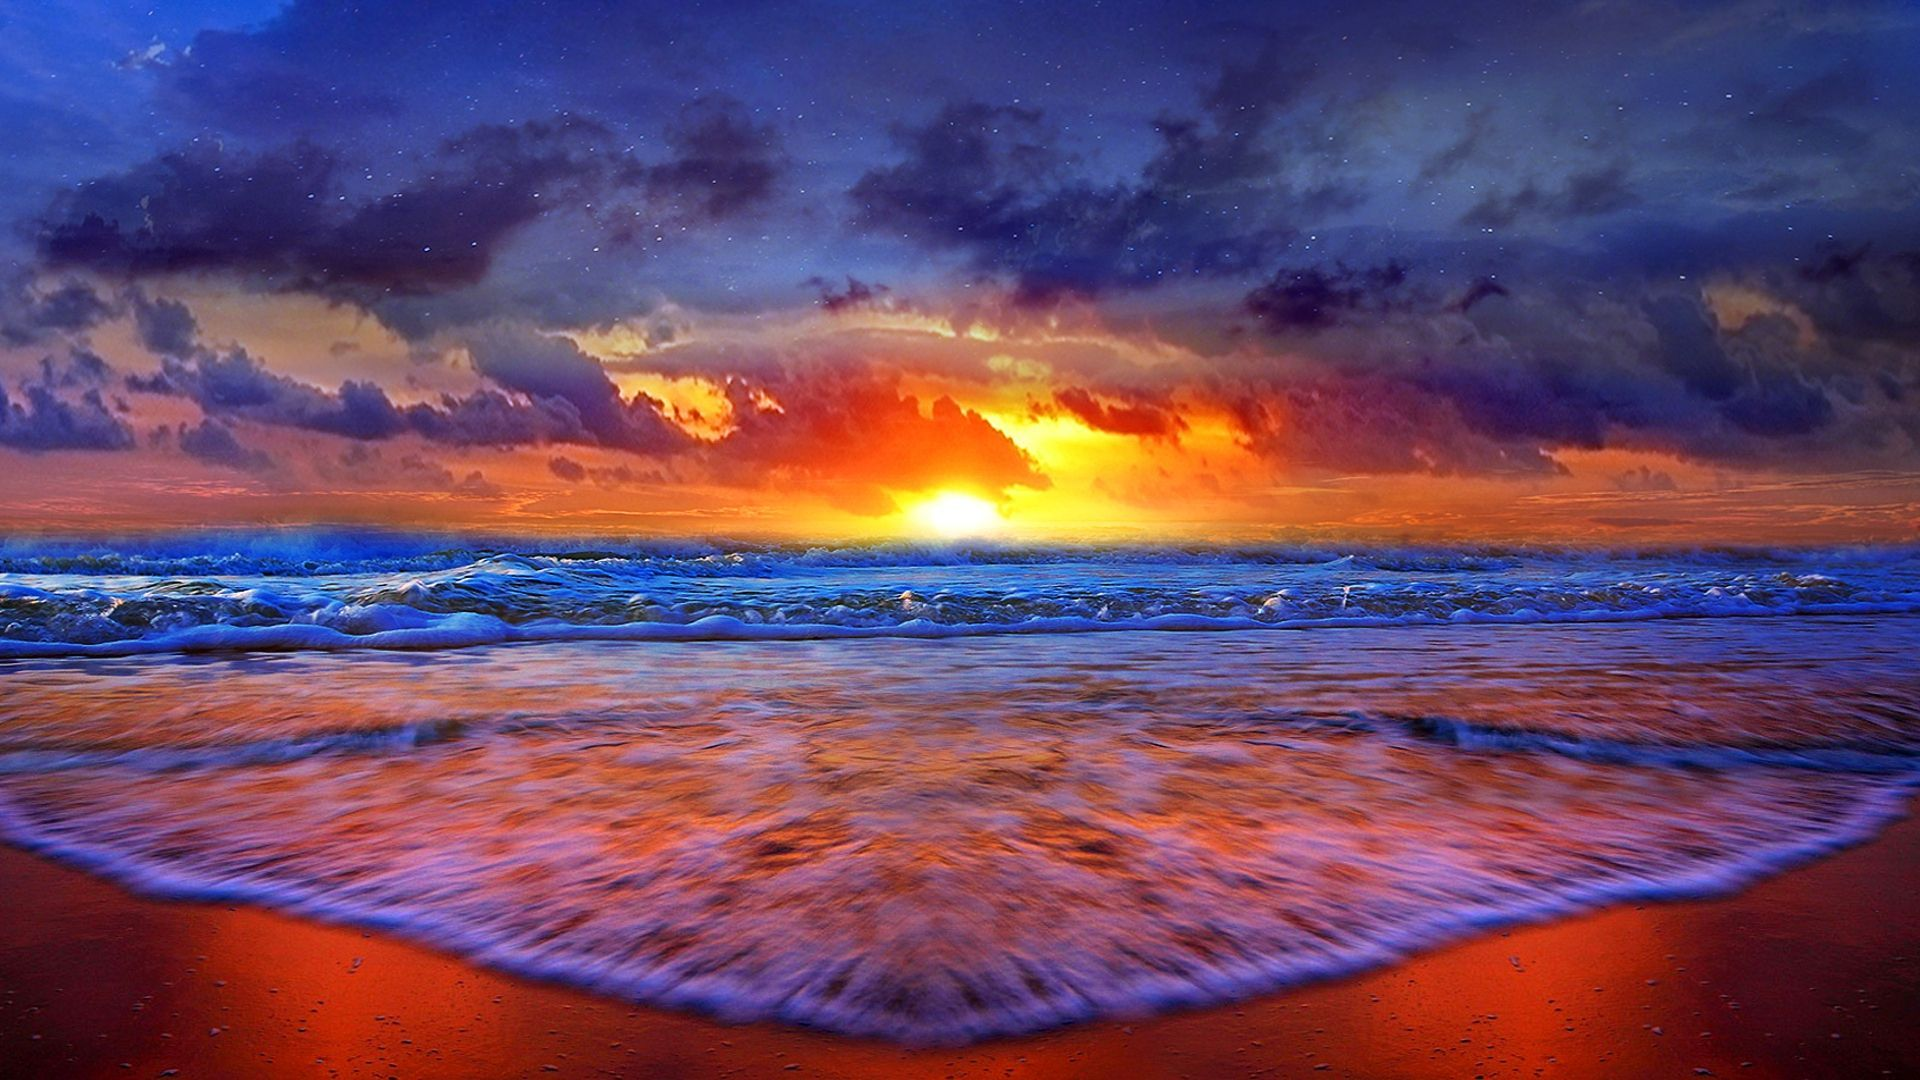 Beach Sunset Desktop Wallpapers Top Free Beach Sunset Desktop Backgrounds Wallpaperaccess